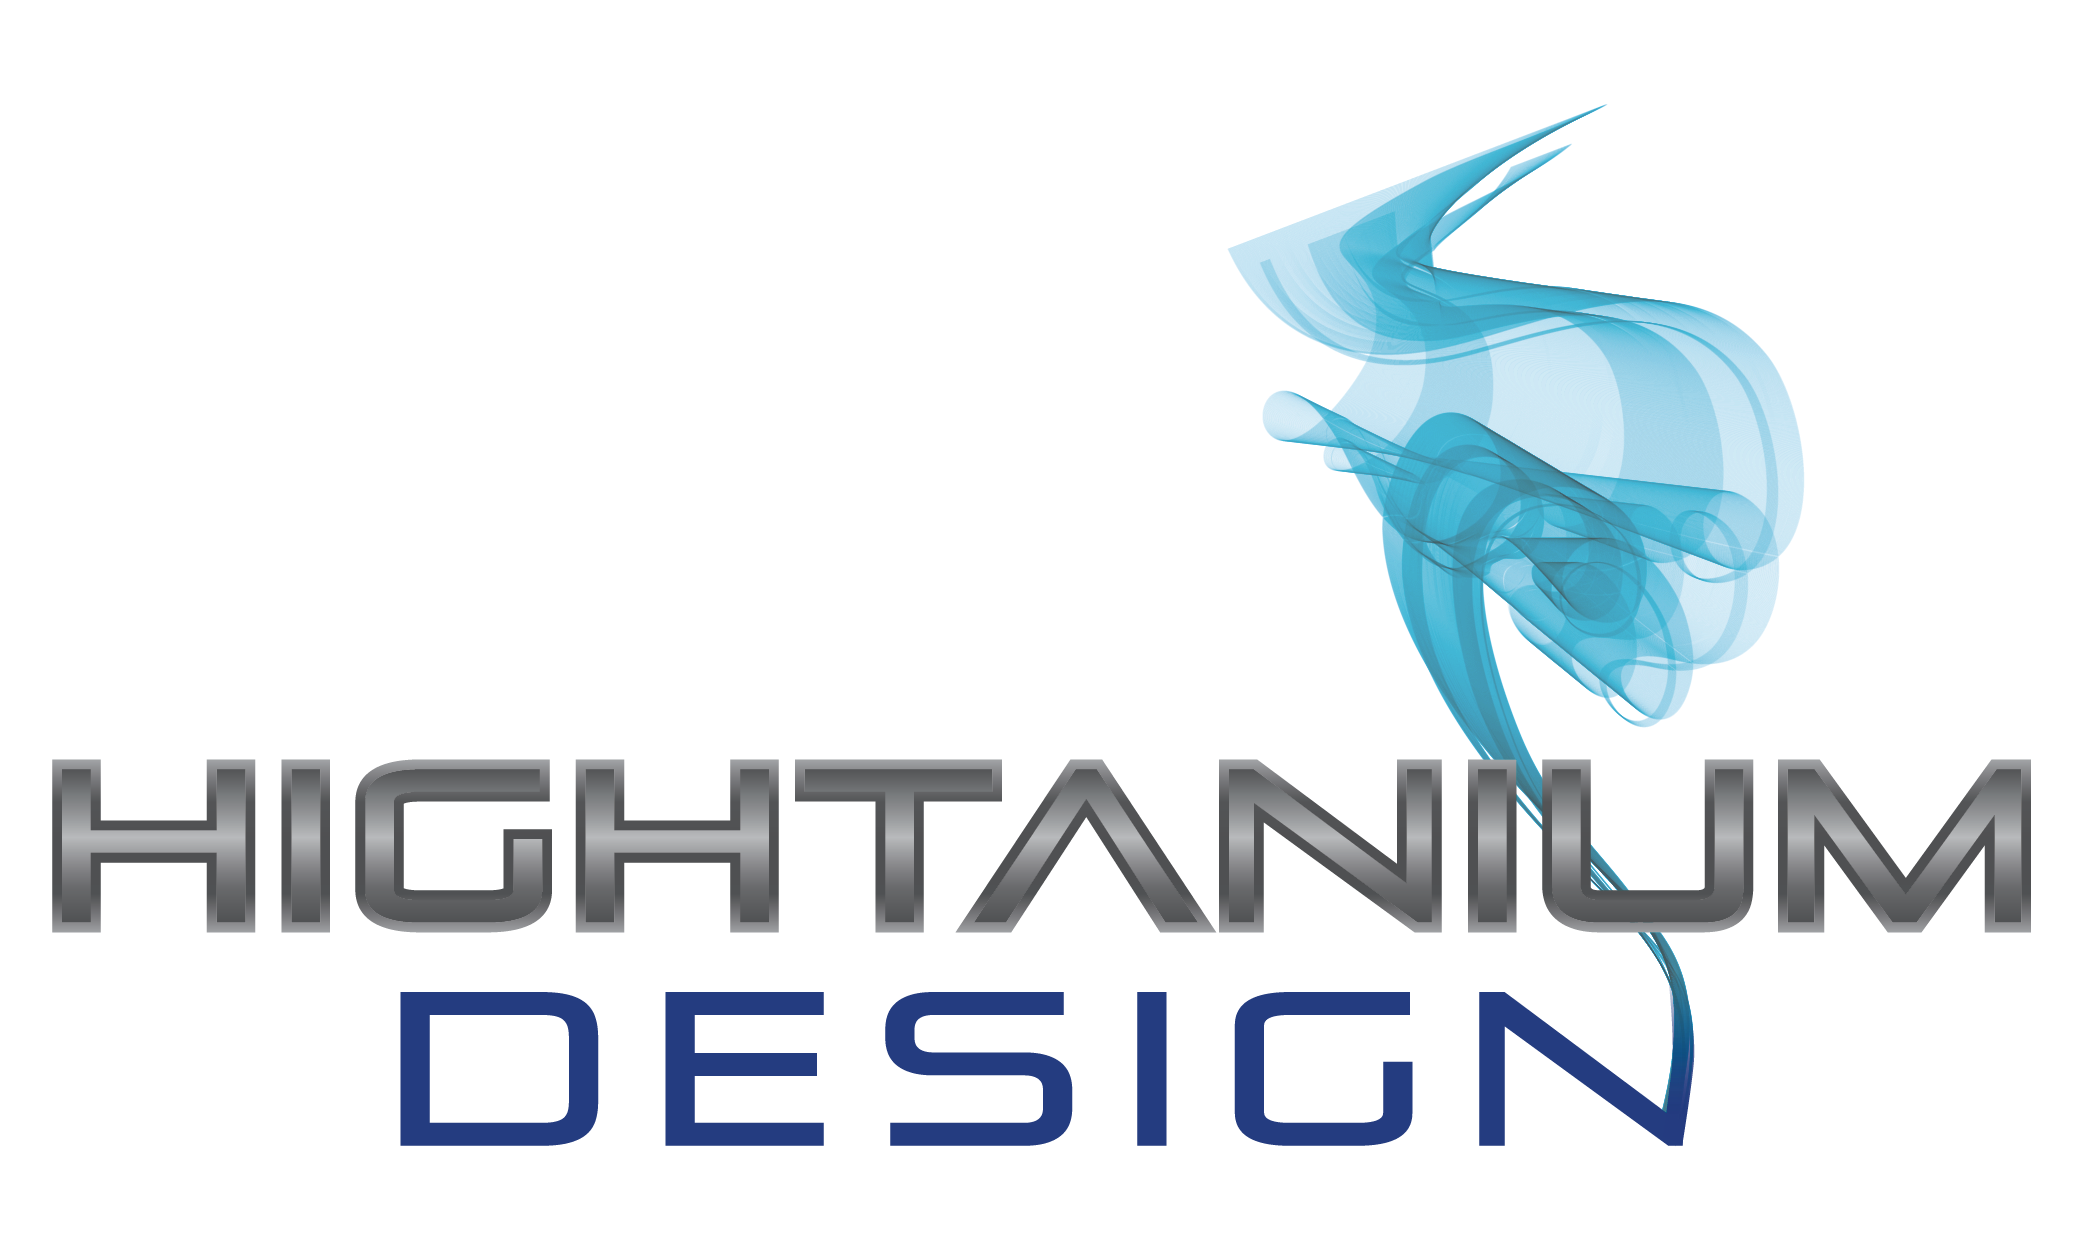 Hightanium Design | Titanium Smoking Pipes